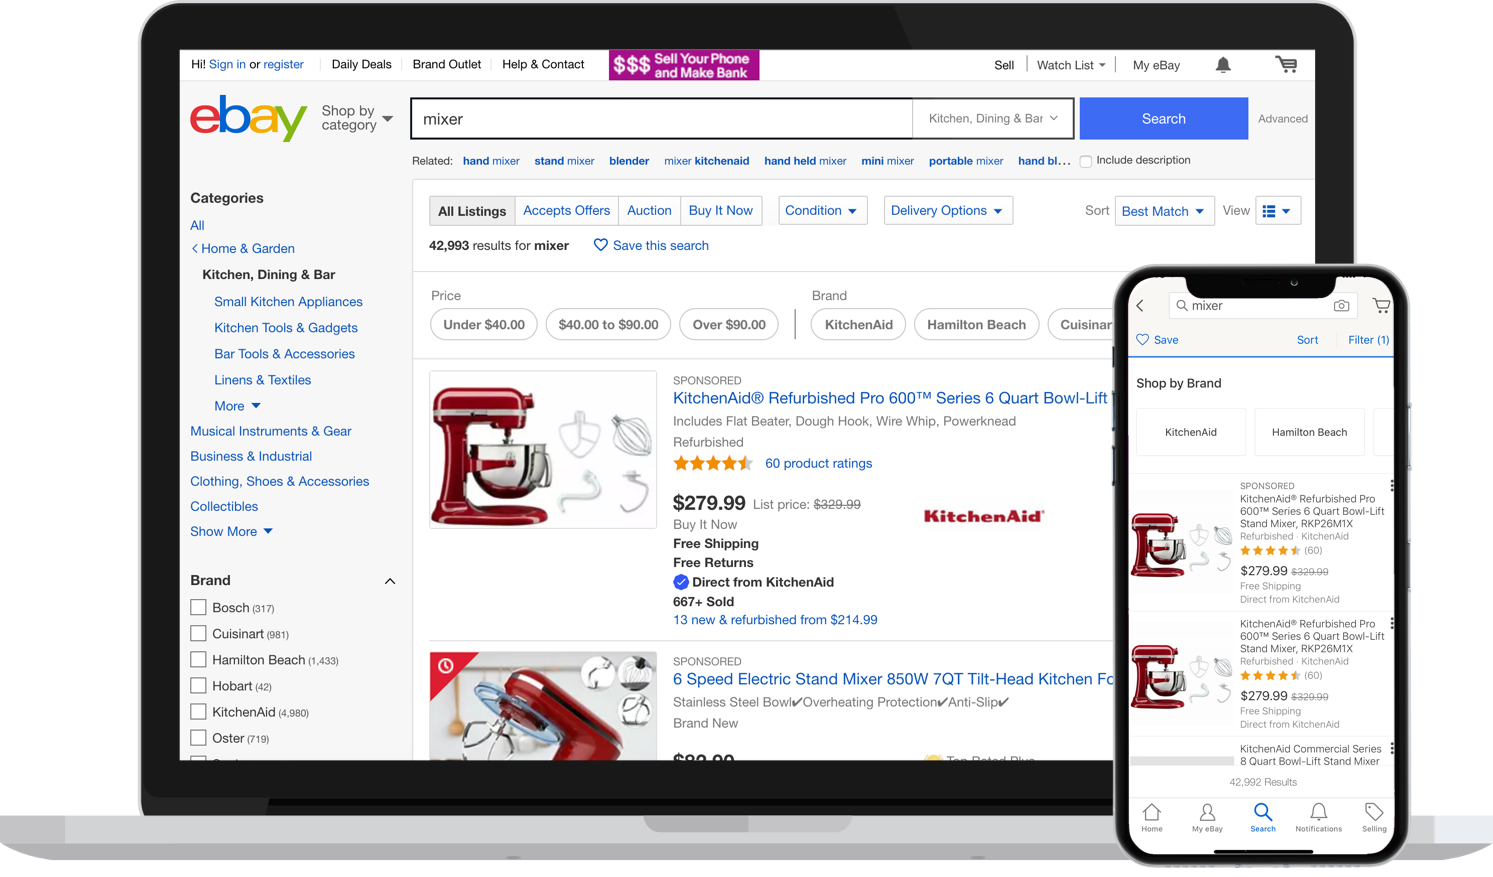 ebay's website versus mobile experiences